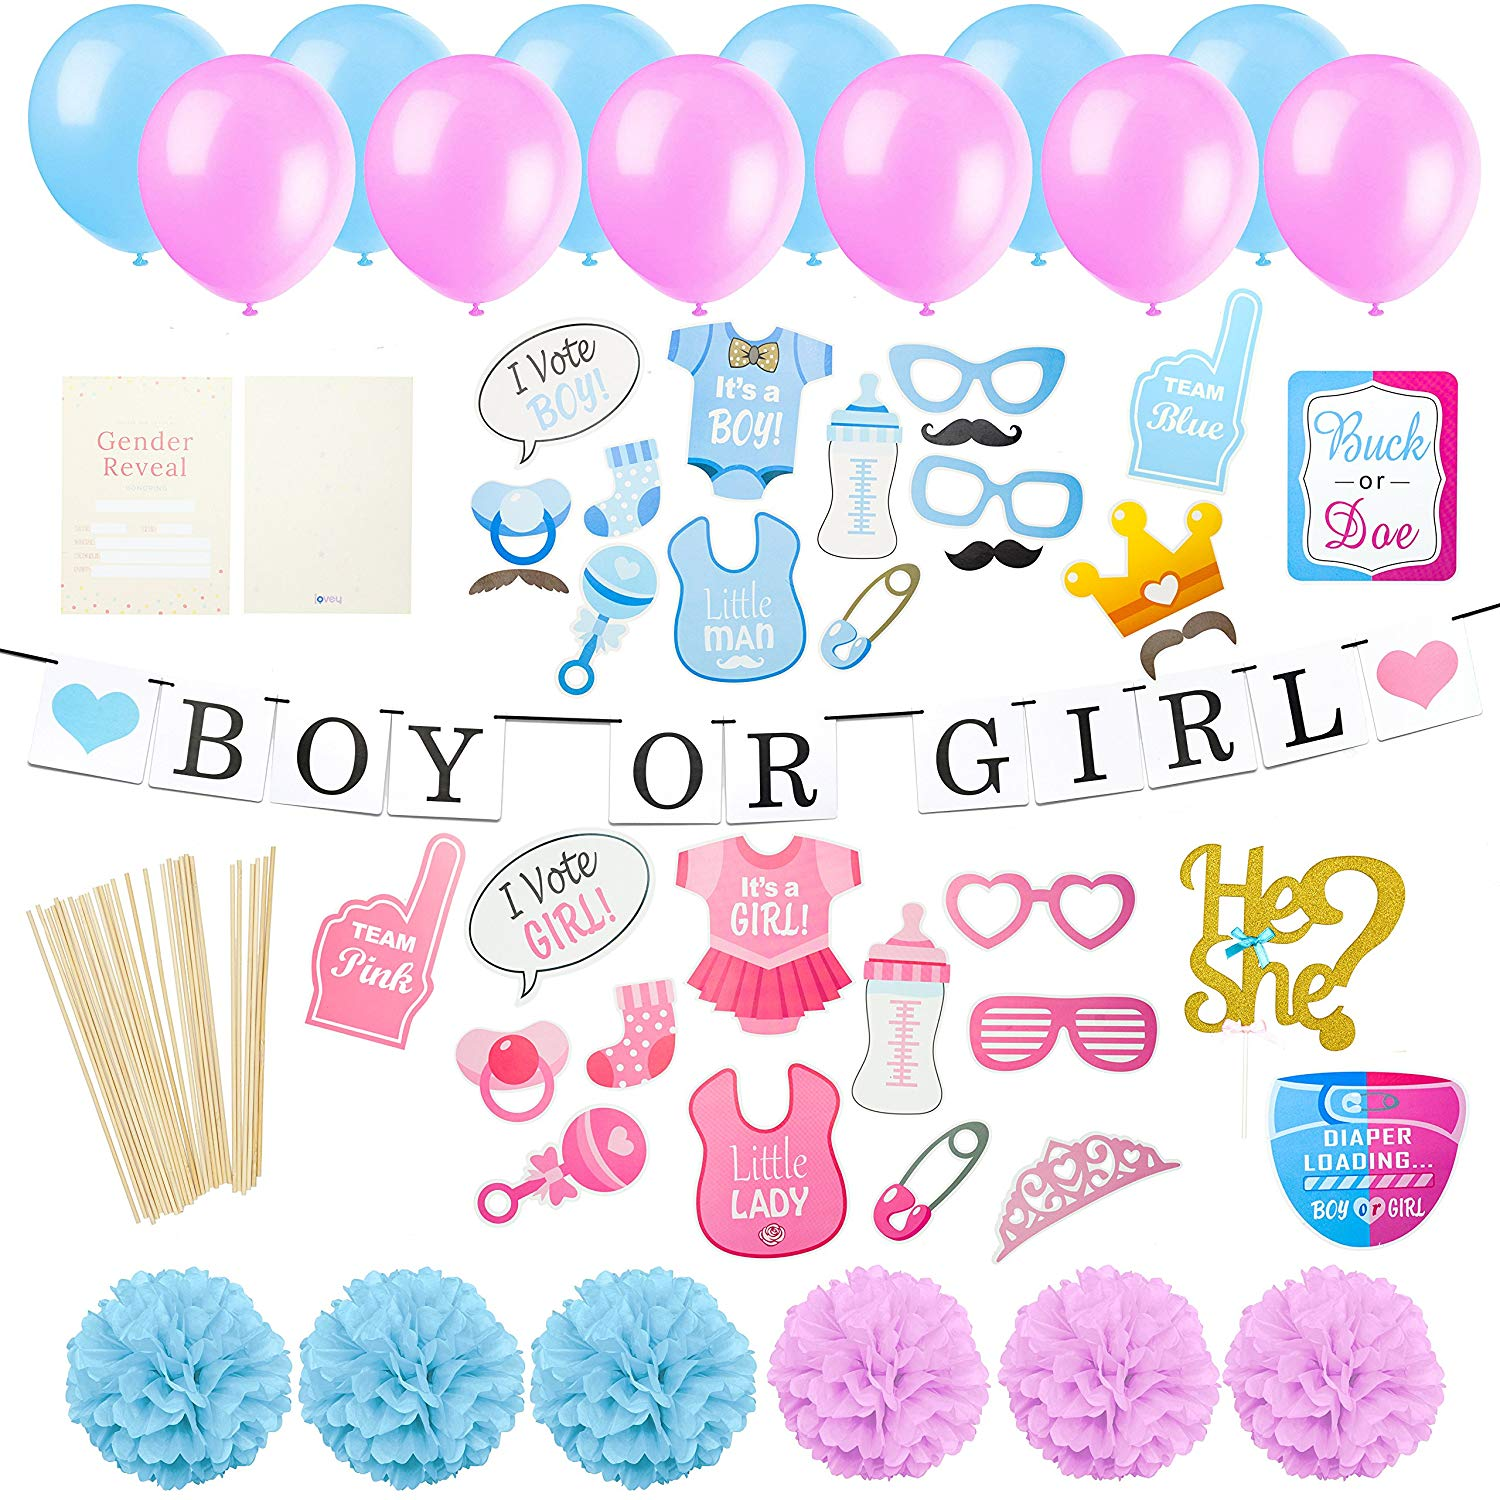 Gender Reveal Party Supplies Kit | Baby Shower Decorations | Pre-Strung Boy Or Girl Banner | 20 Invitation Cards | 30 Pieces Photo Booth Props | 1 Cake Topper | 70 Pieces